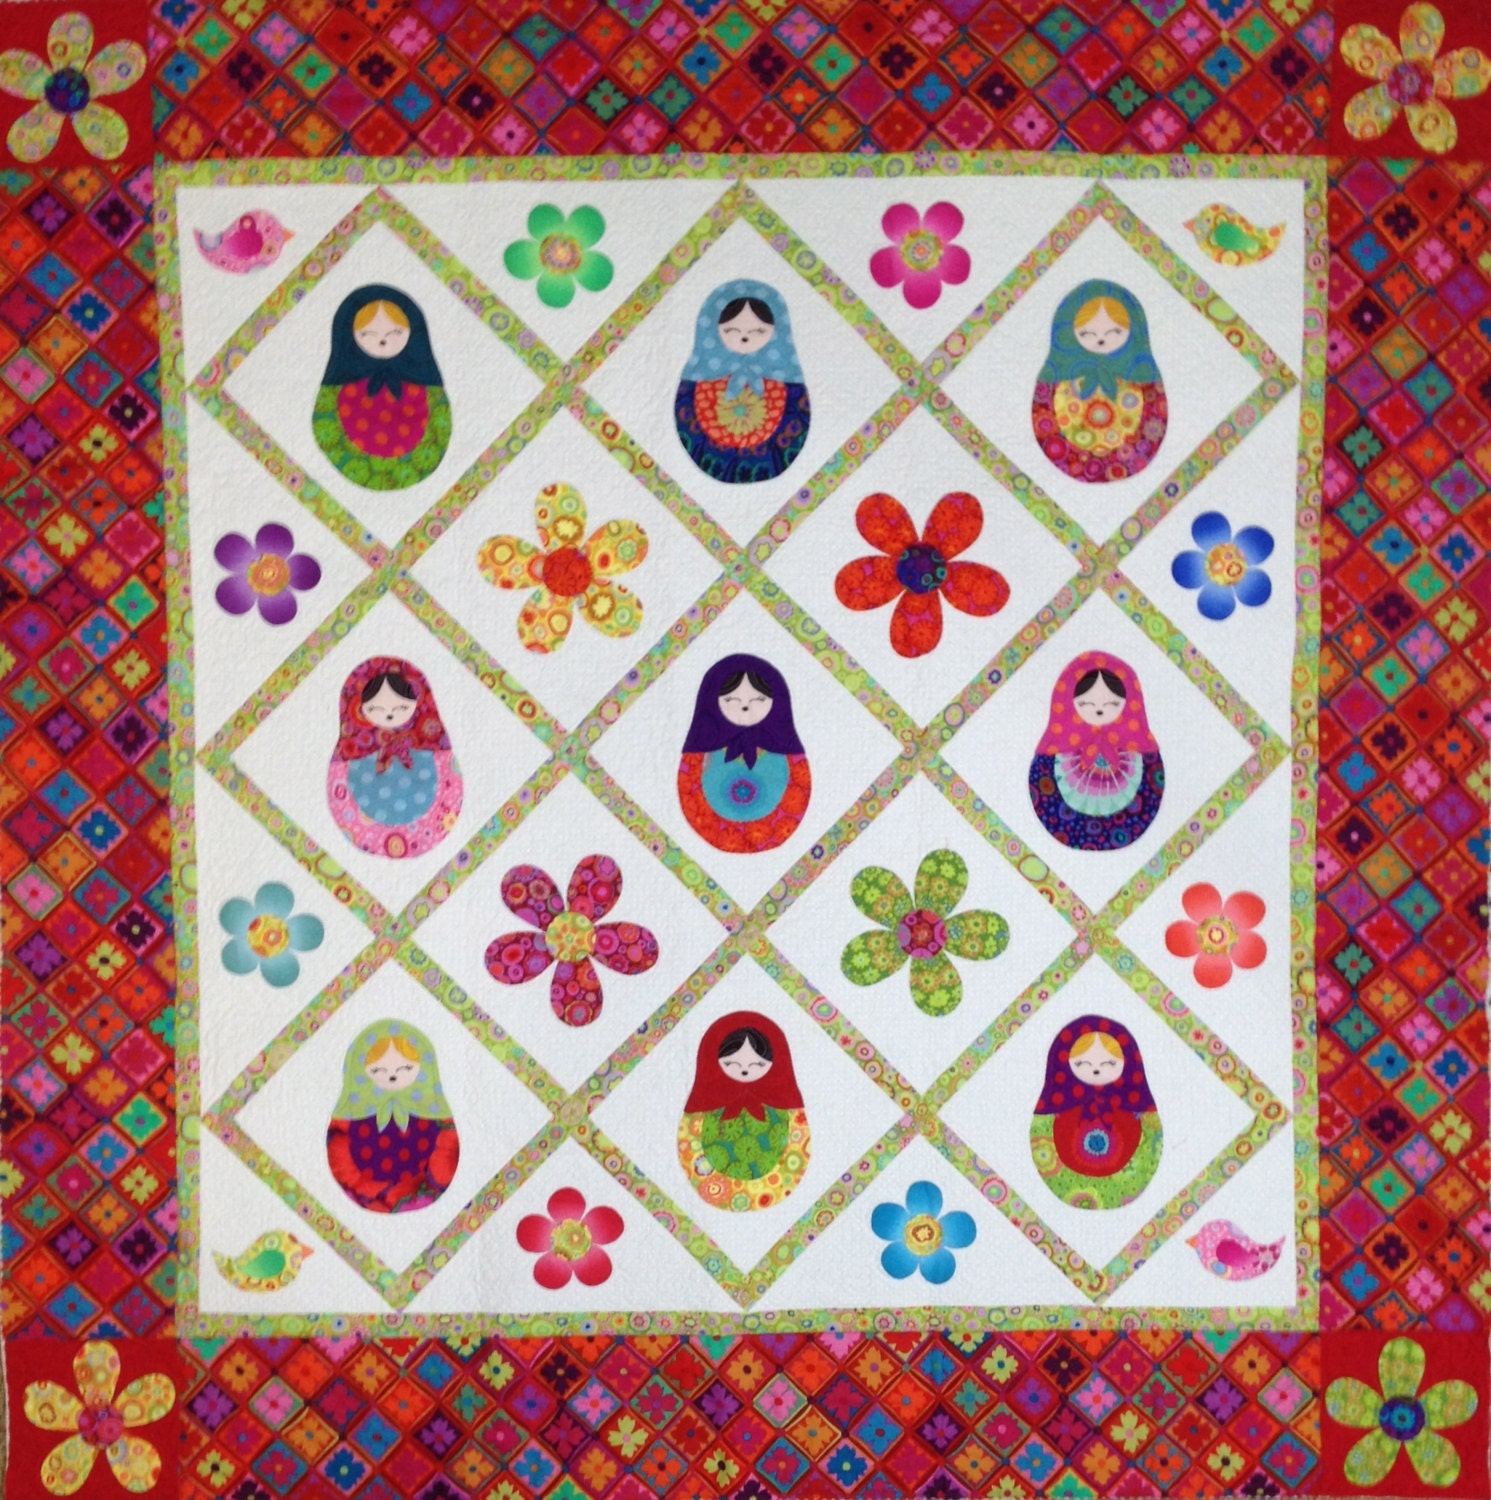 Doll Quilt Patterns For Sewing: MATRYOSHKA NESTING DOLL Quilt Pattern Only Designed By Sew